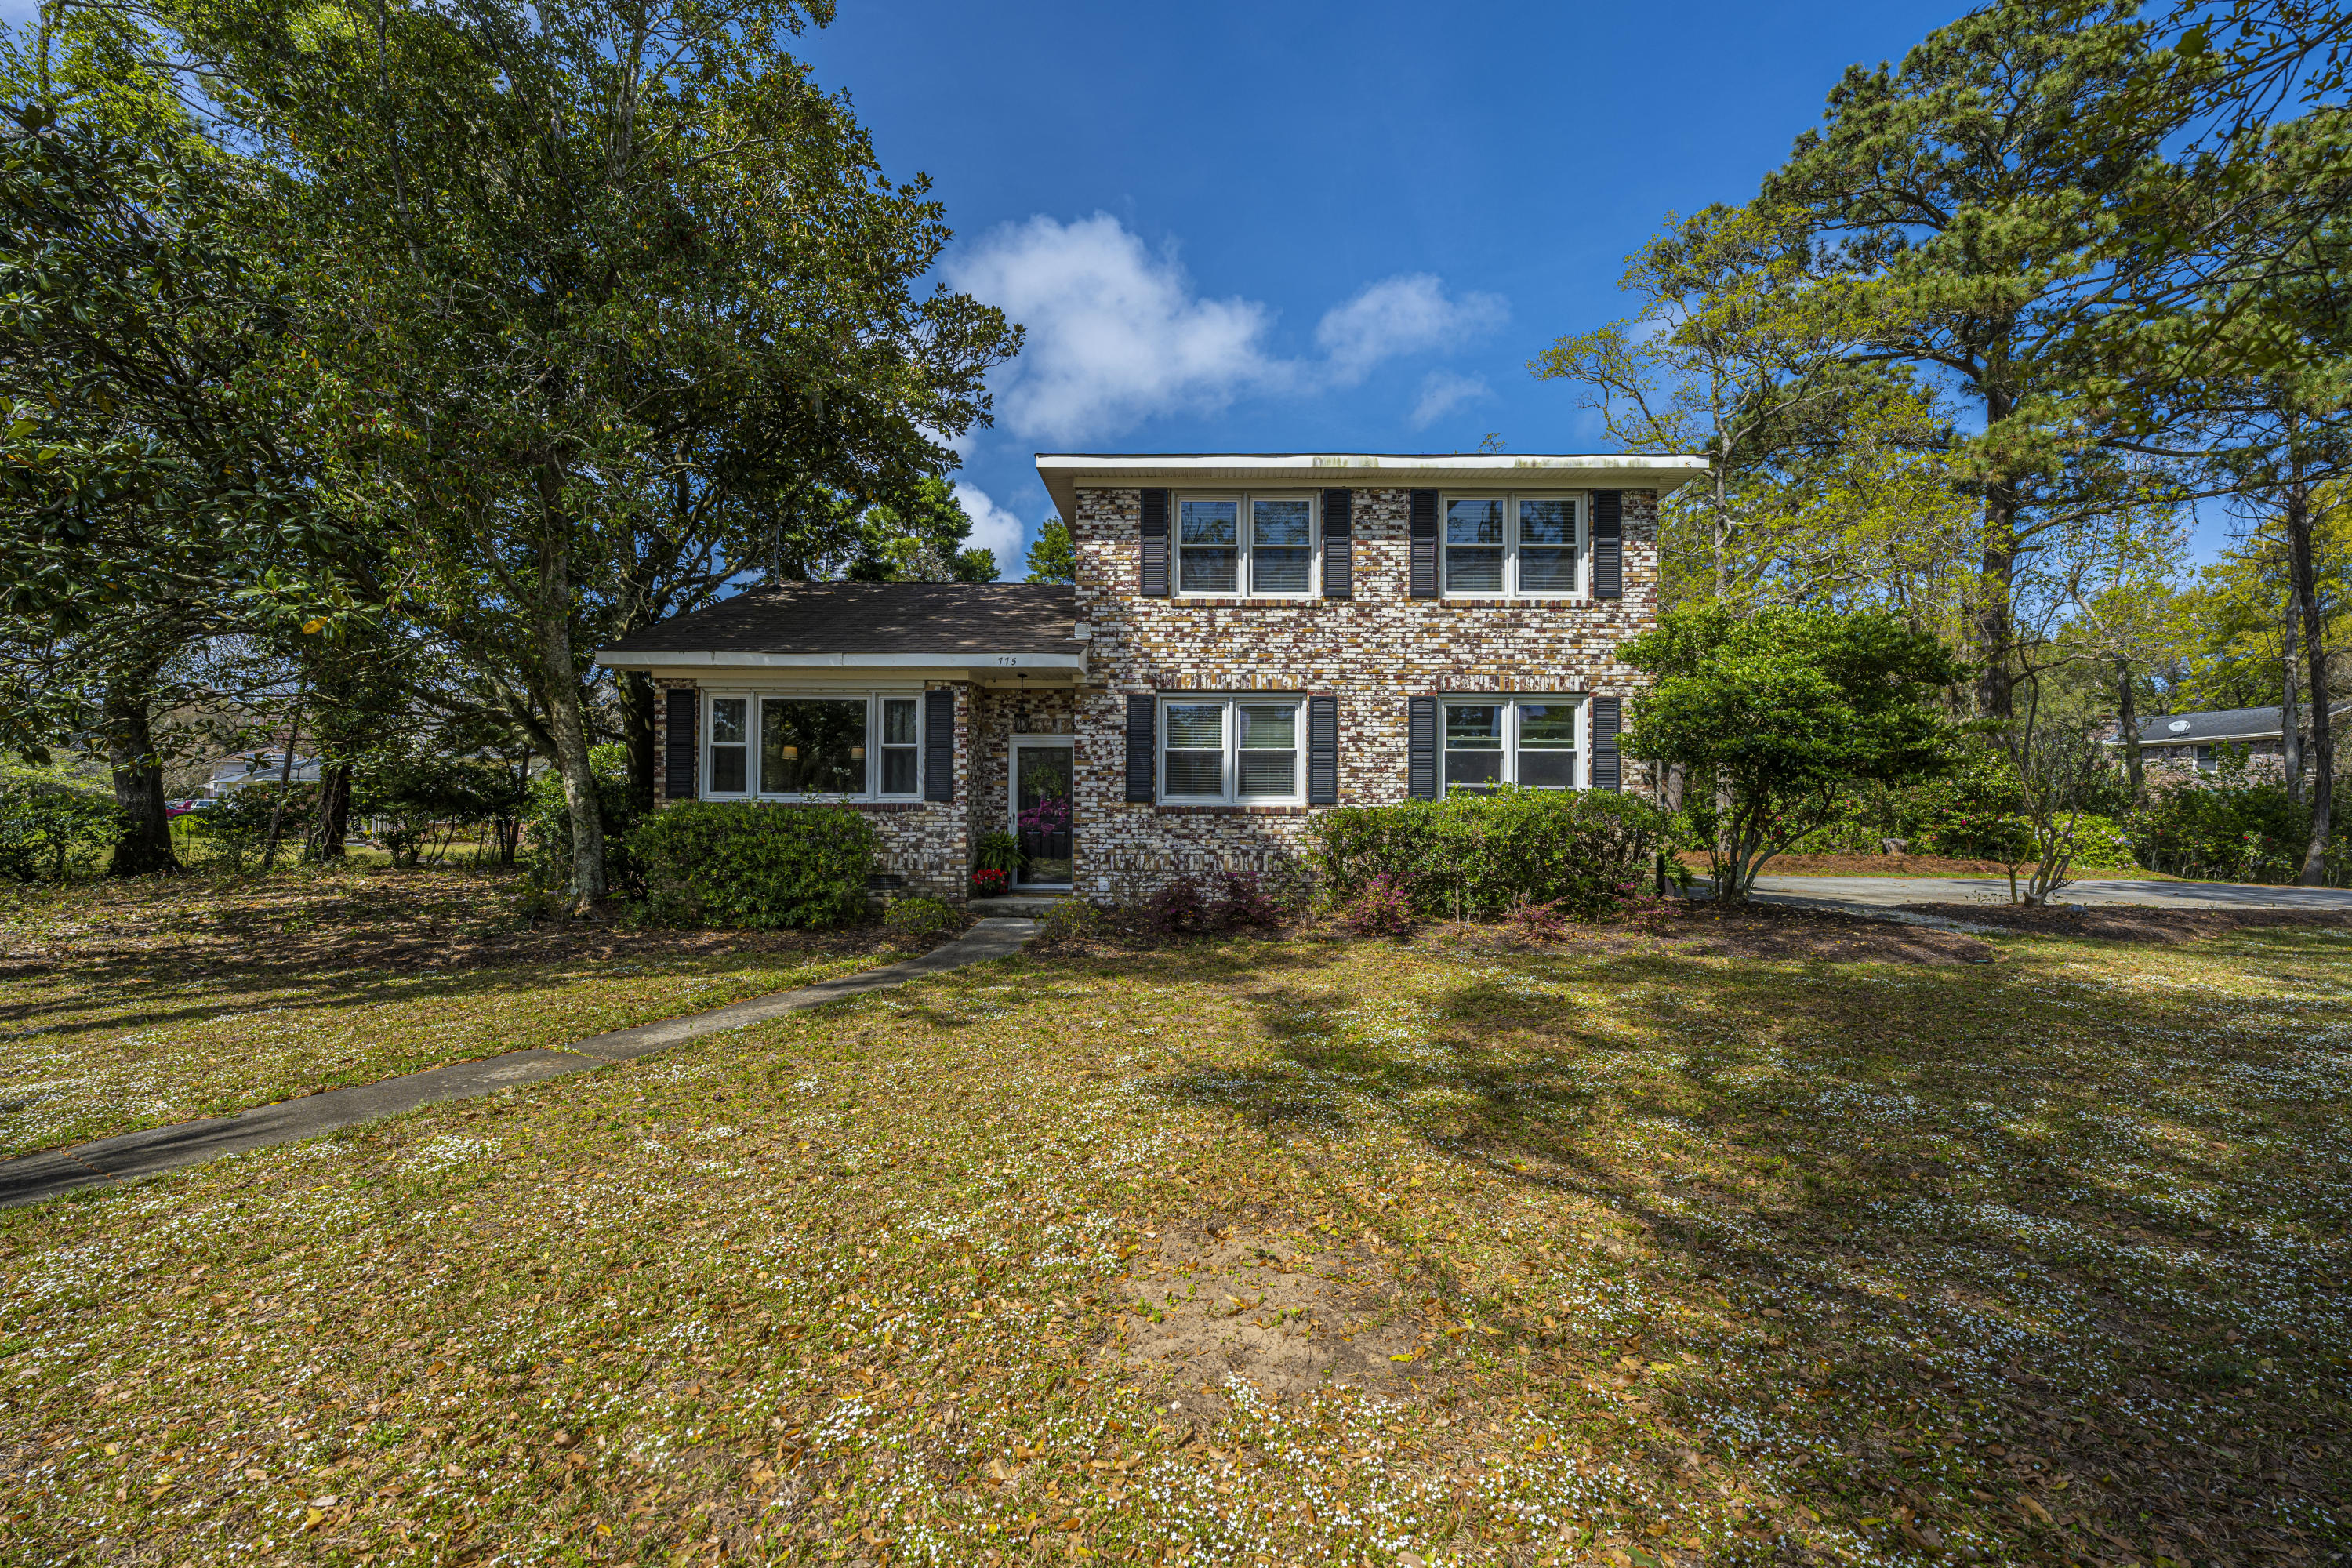 Stiles Point Homes For Sale - 775 Sparrow, Charleston, SC - 27